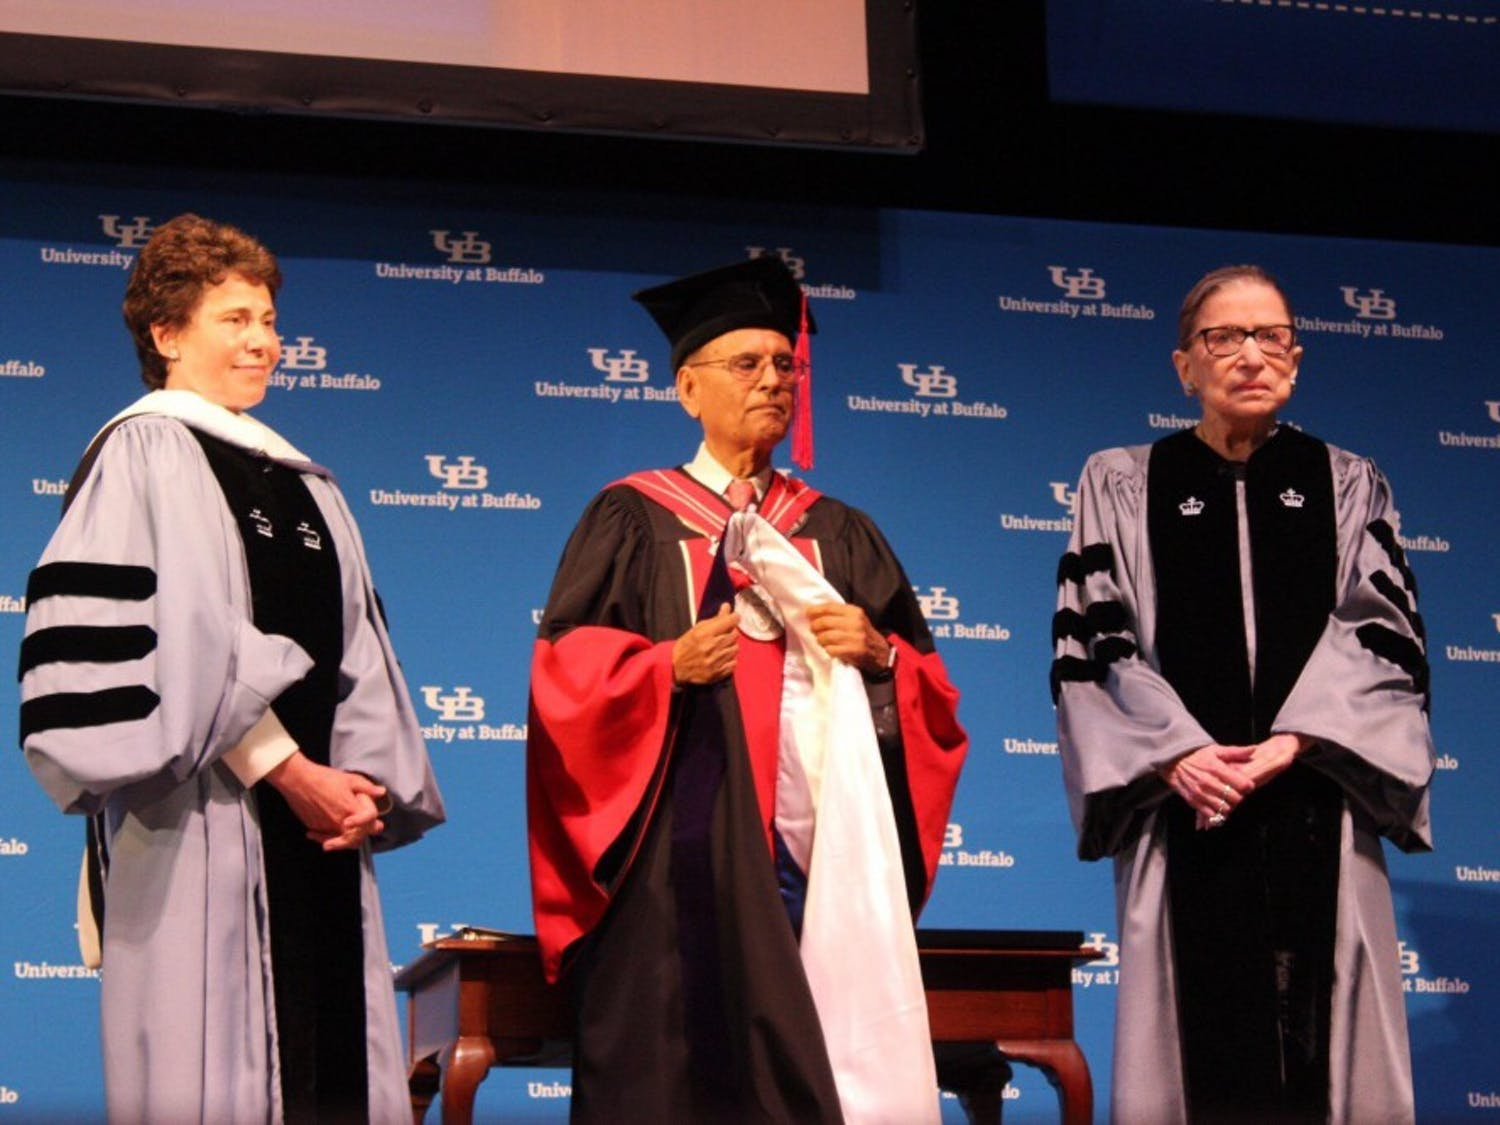 Associate Justice of the Supreme Court Ruth Bader Ginsburg (right) stands next to UB President Satish Tripathi and Acting Chairman of the SUNY Board of Trustees Merryl Tisch as she receives her honorary diploma from UB.